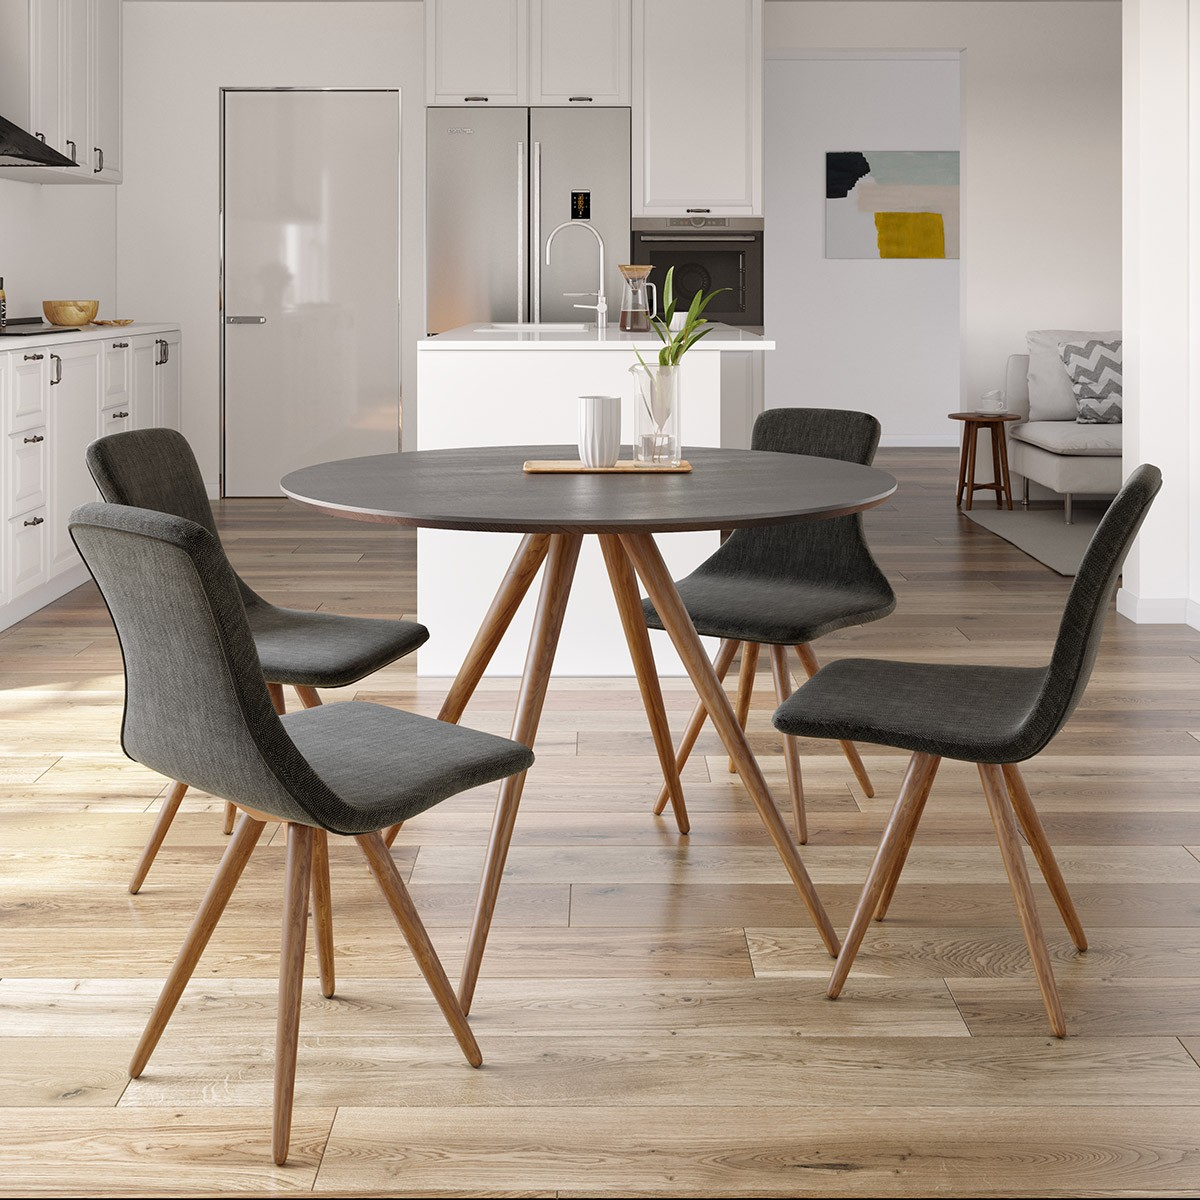 Modrest Tracer Contemporary Black And Walnut Round Dining Table